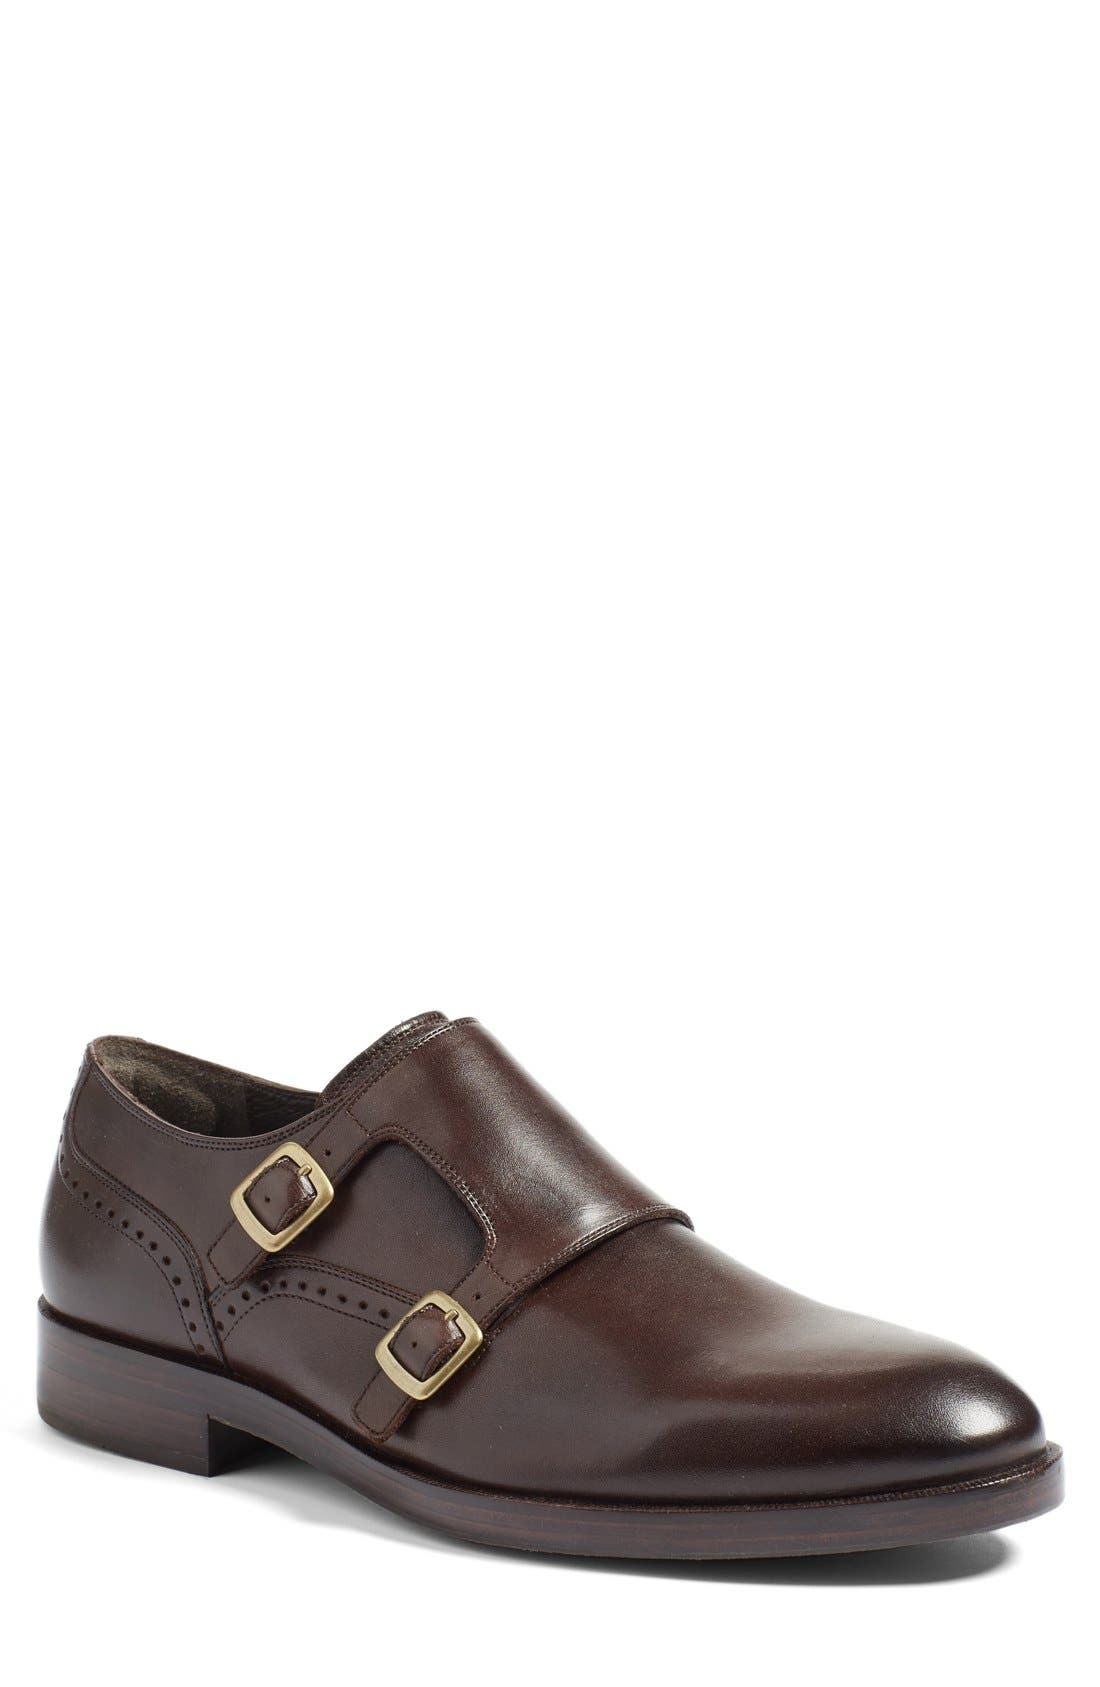 Main Image - Cole Haan 'Harrison' Double Monk Strap Shoe (Men)